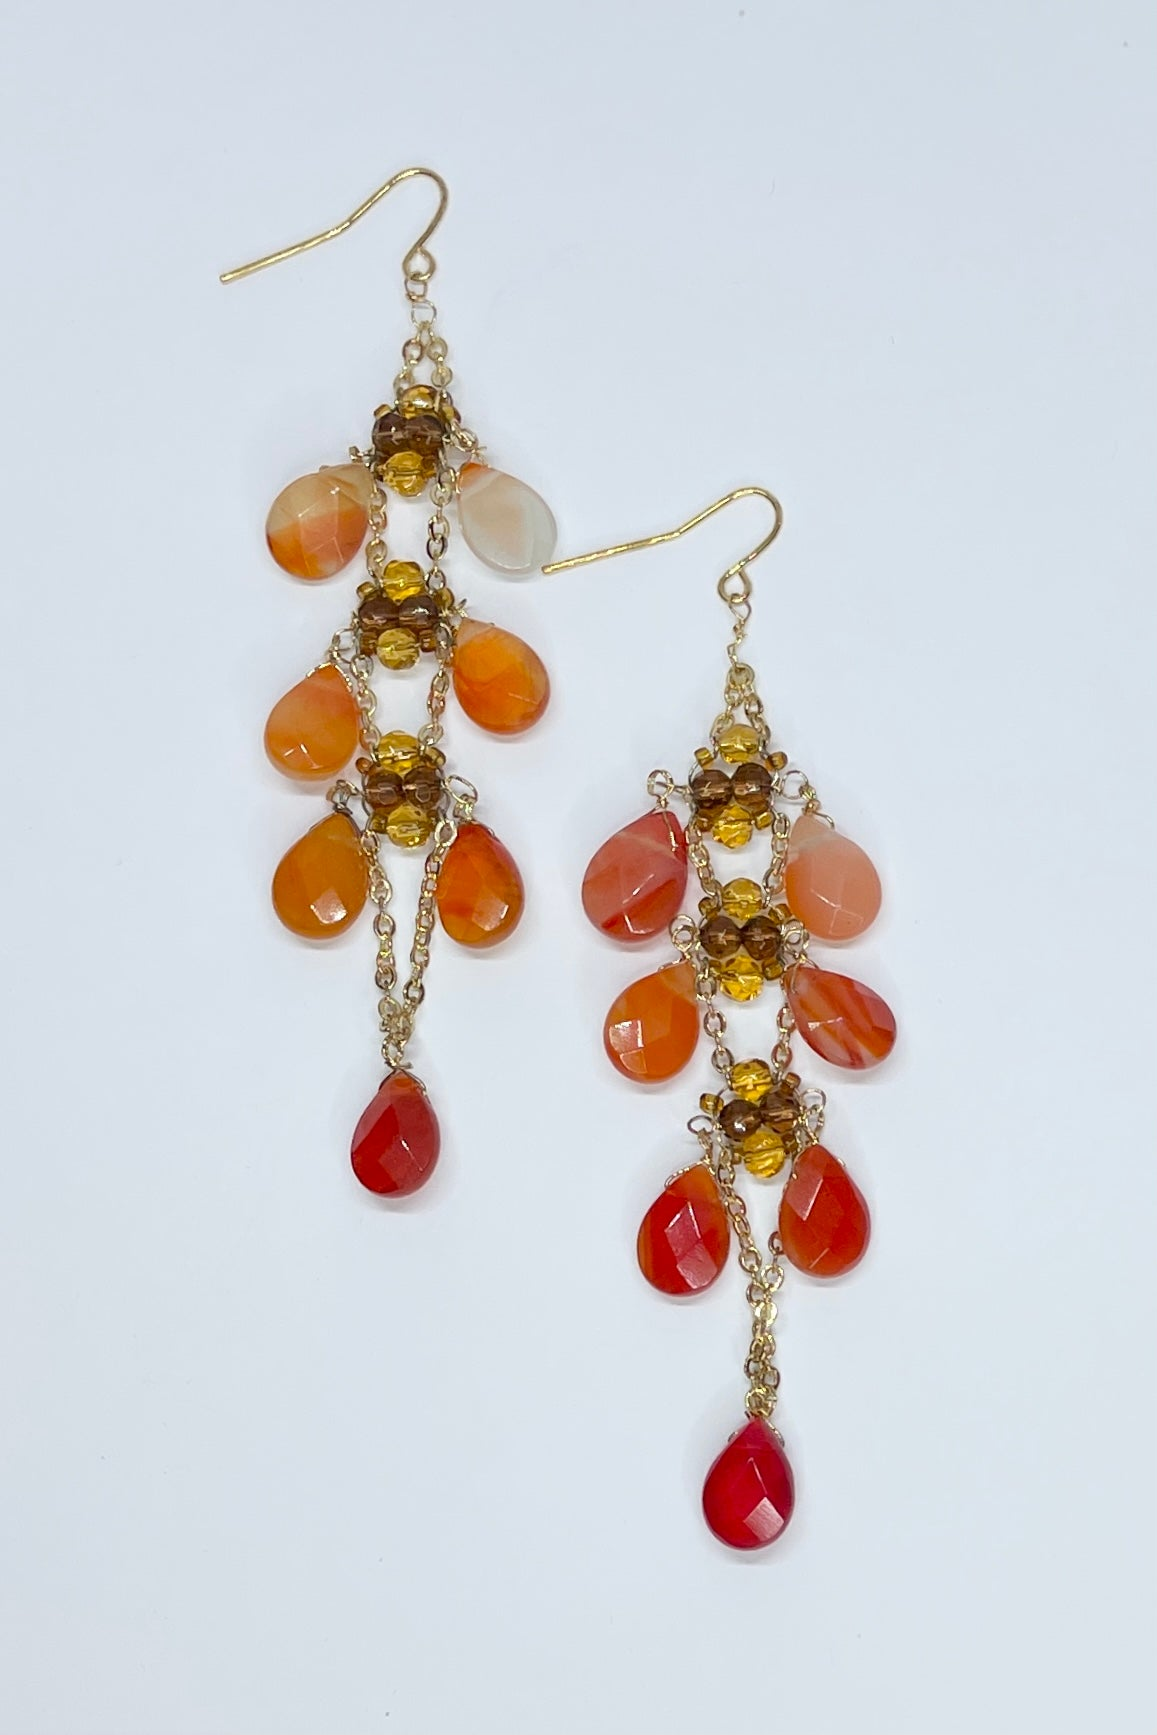 Chandelier earrings with amber coloured glass droplets